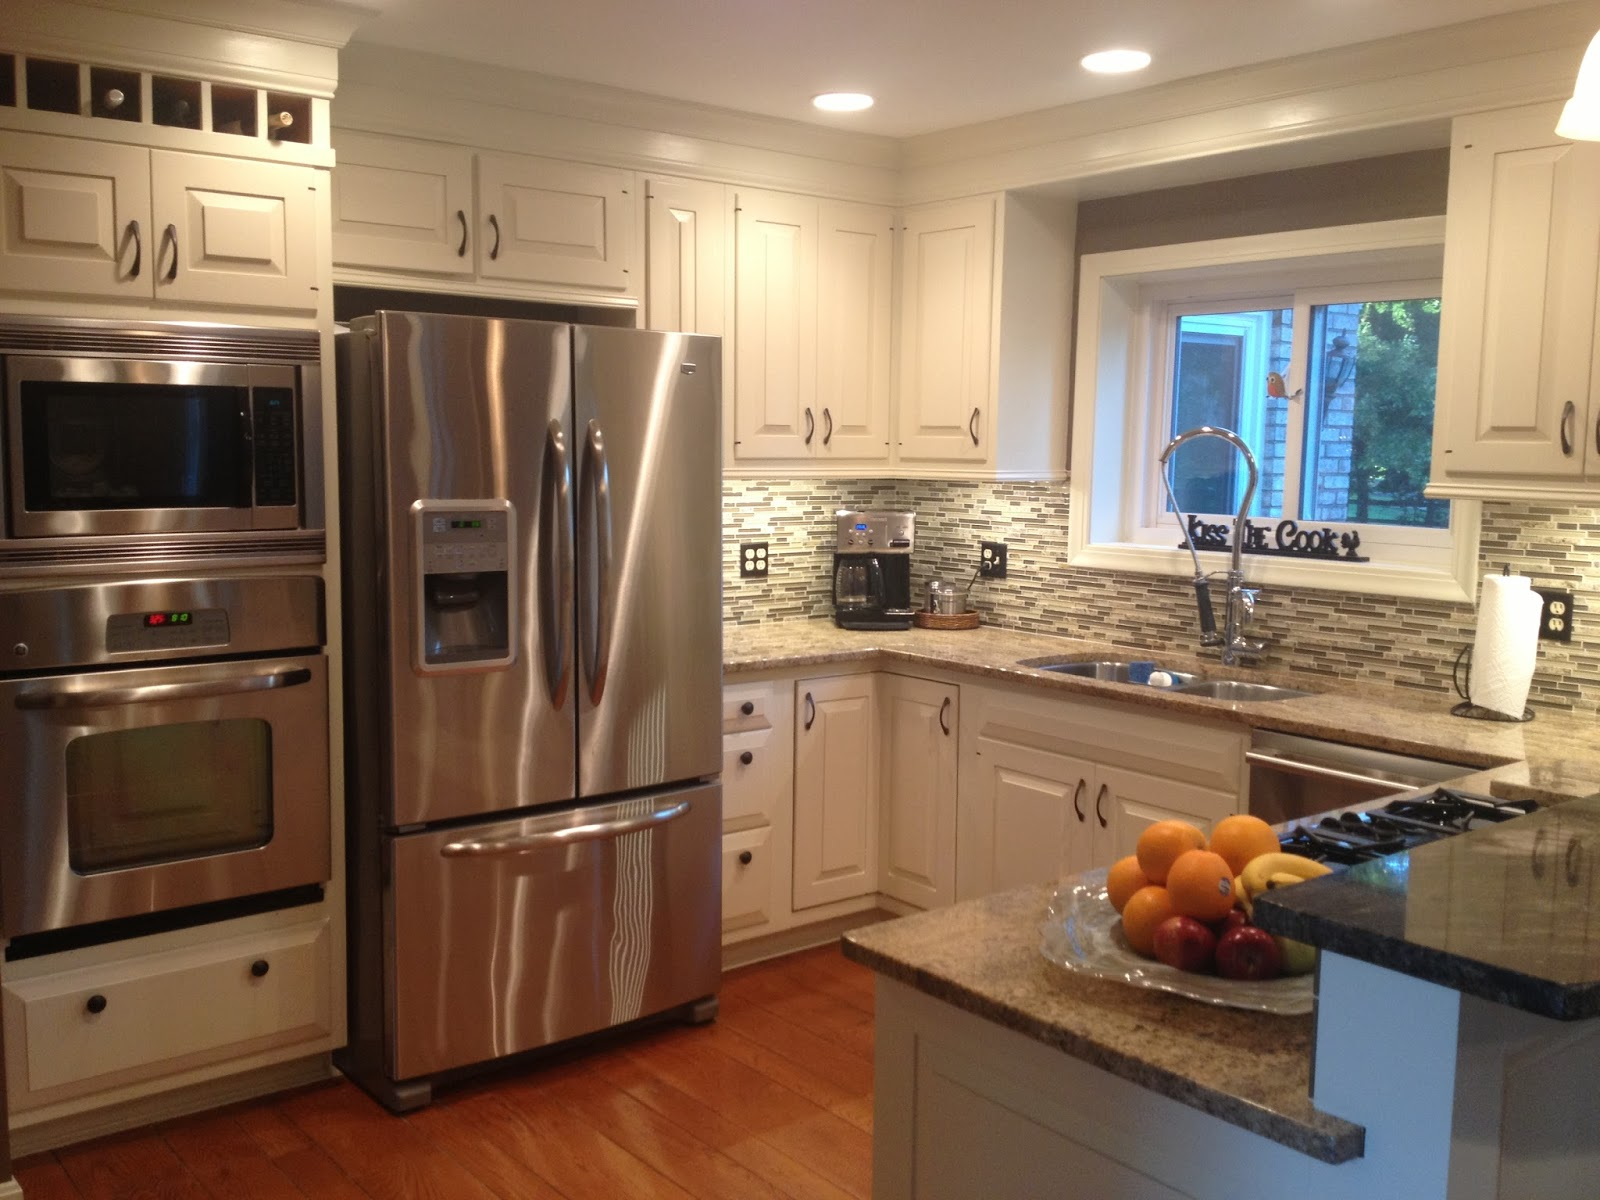 Four seasons style the new kitchen remodel on a budget for Small kitchen remodel on a budget